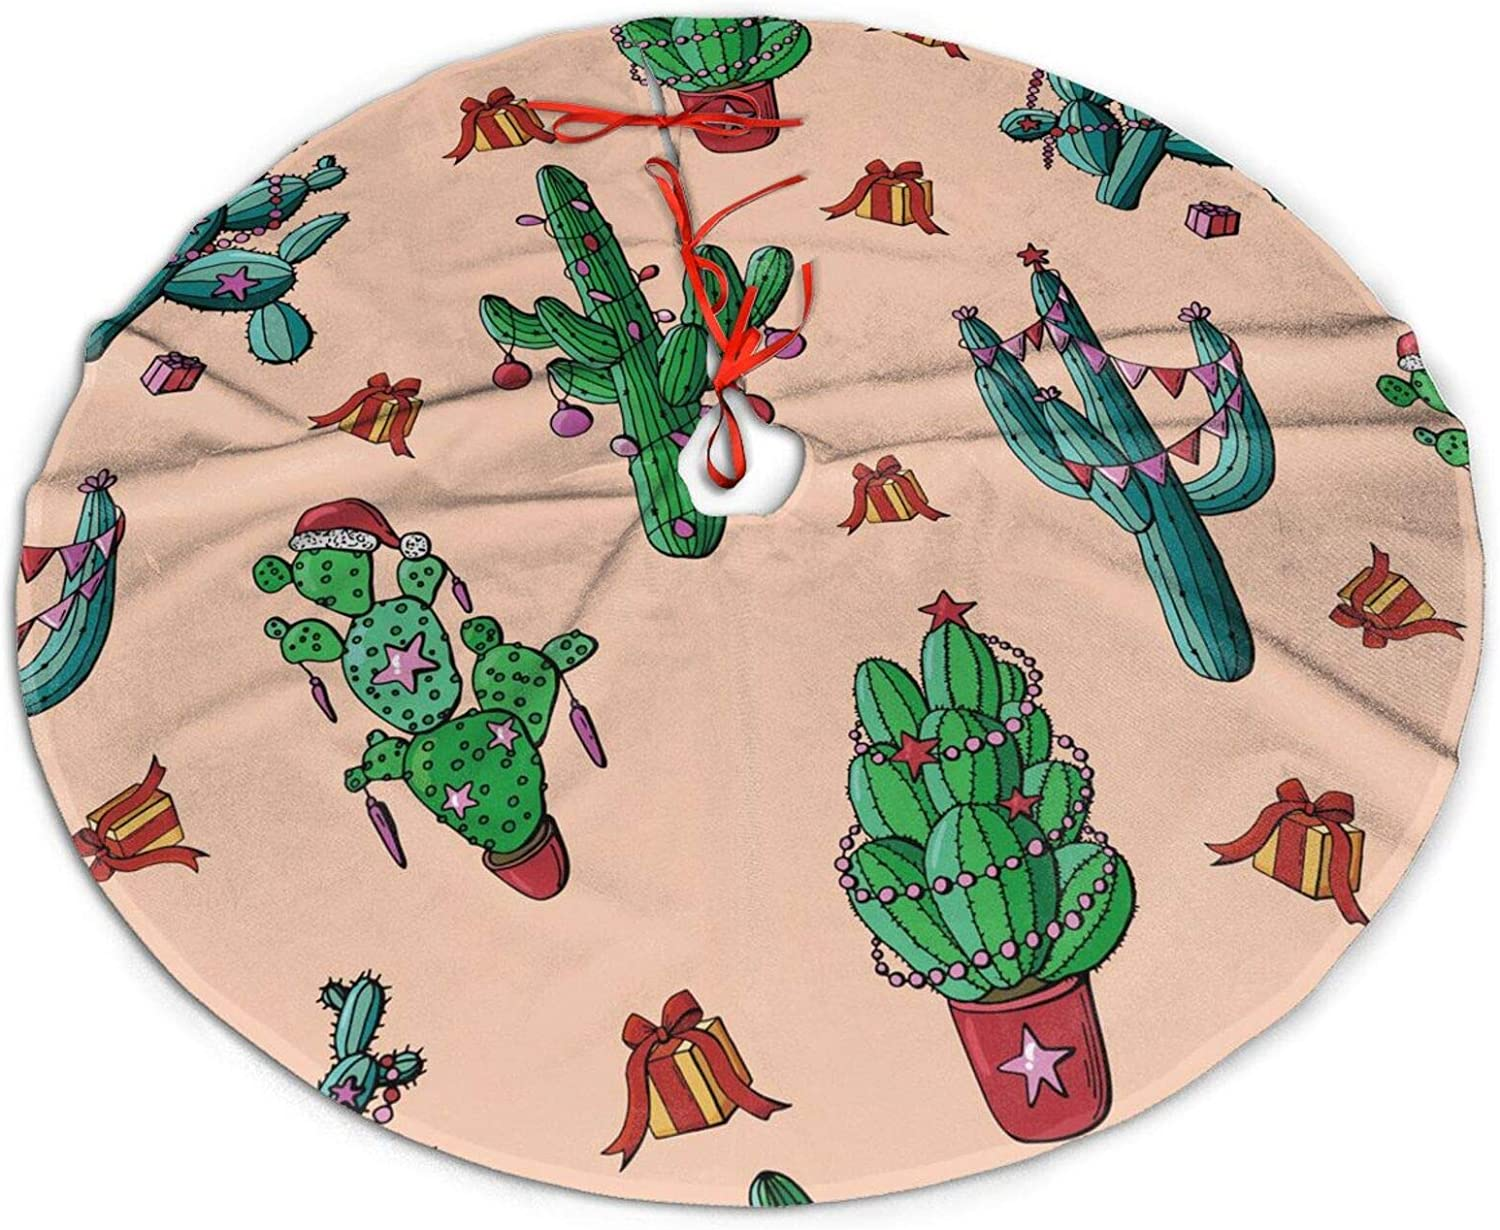 MINIOZE Christmas Cactus Gift Hat Botanical Themed 30 36 48 Inch Big Christmas Plush Tree Skirt Carpet Mat Rugs Cover Large Round Pad Classic Xmas Party Favors Ornament Decoration